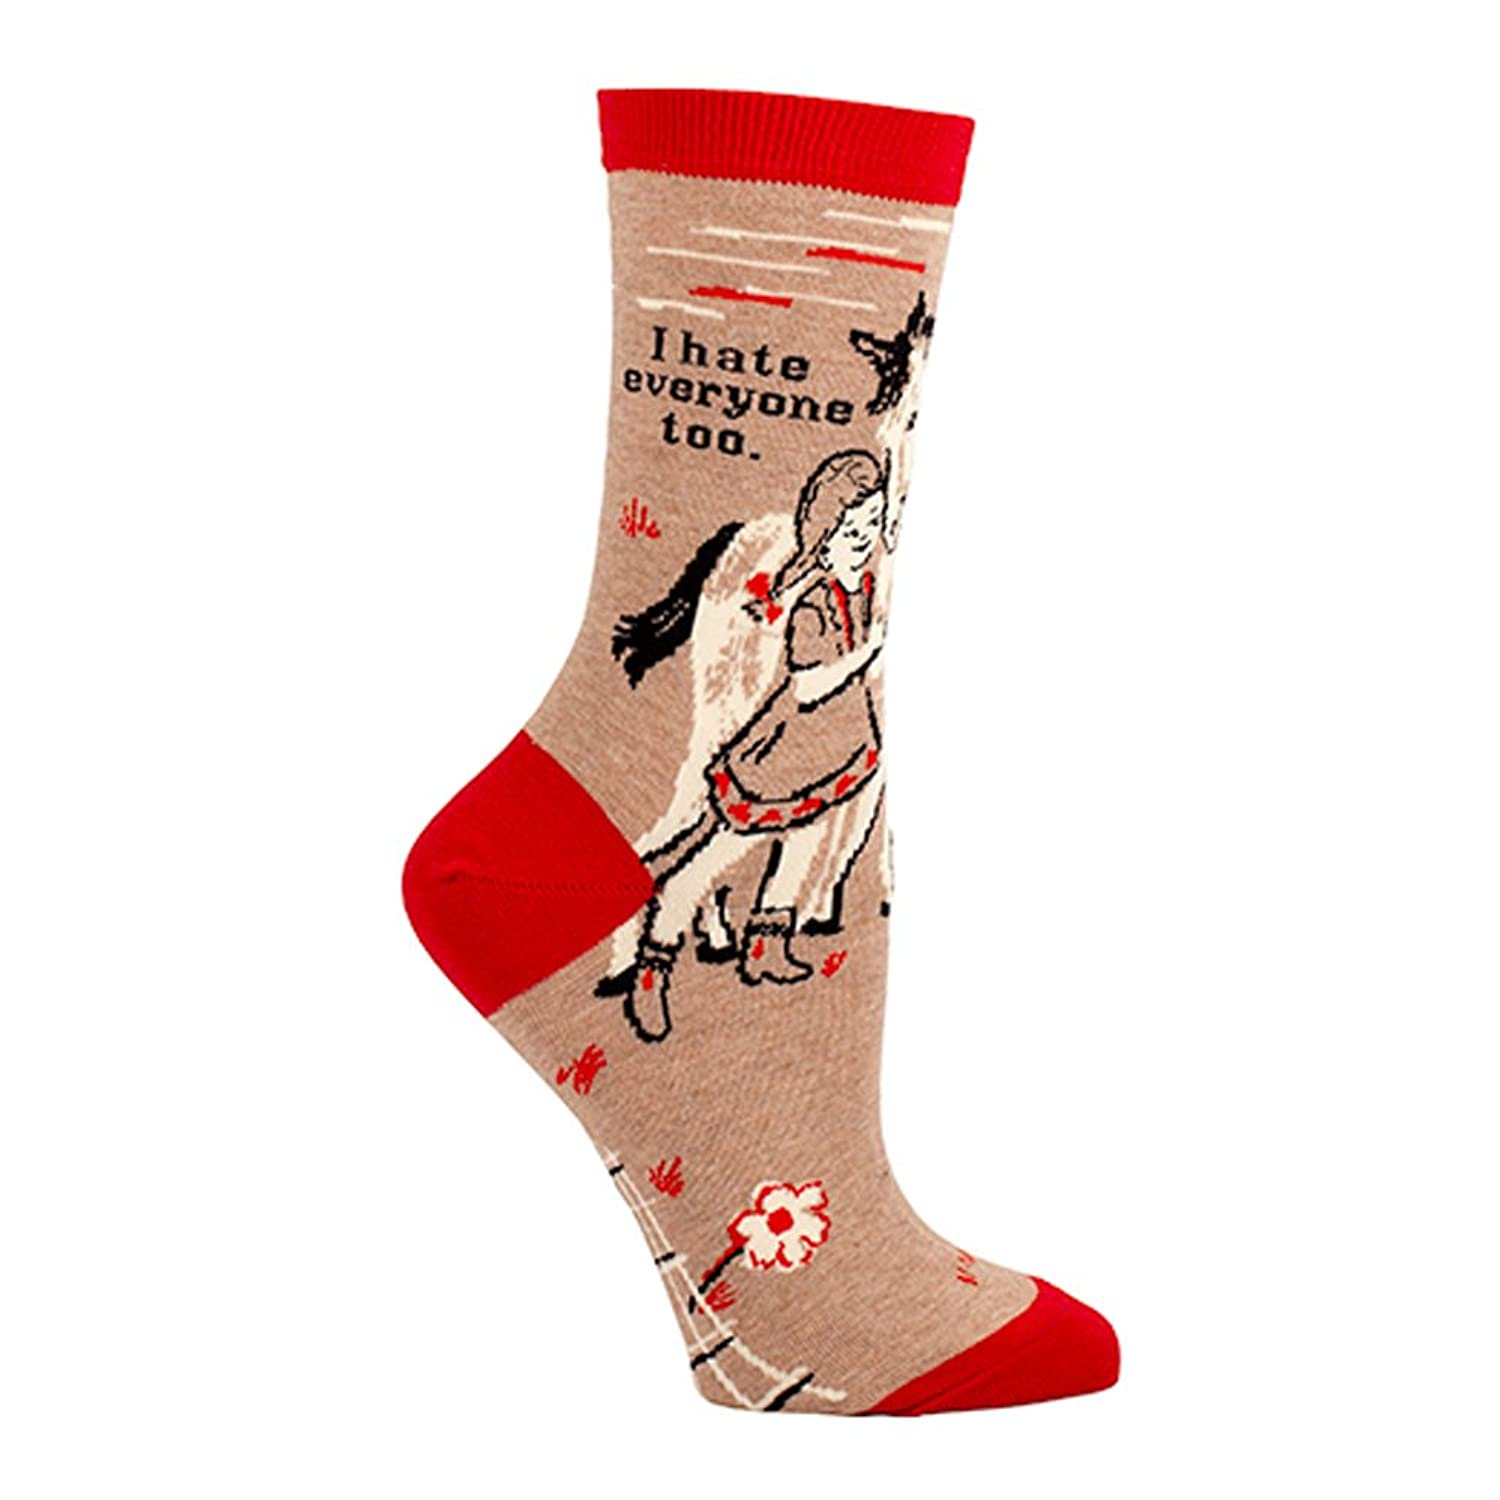 Amazon.com: Blue Q Hate Everyone Too Tan and Red Socks One Size,Womens Shoe  Siz 5-10: Clothing